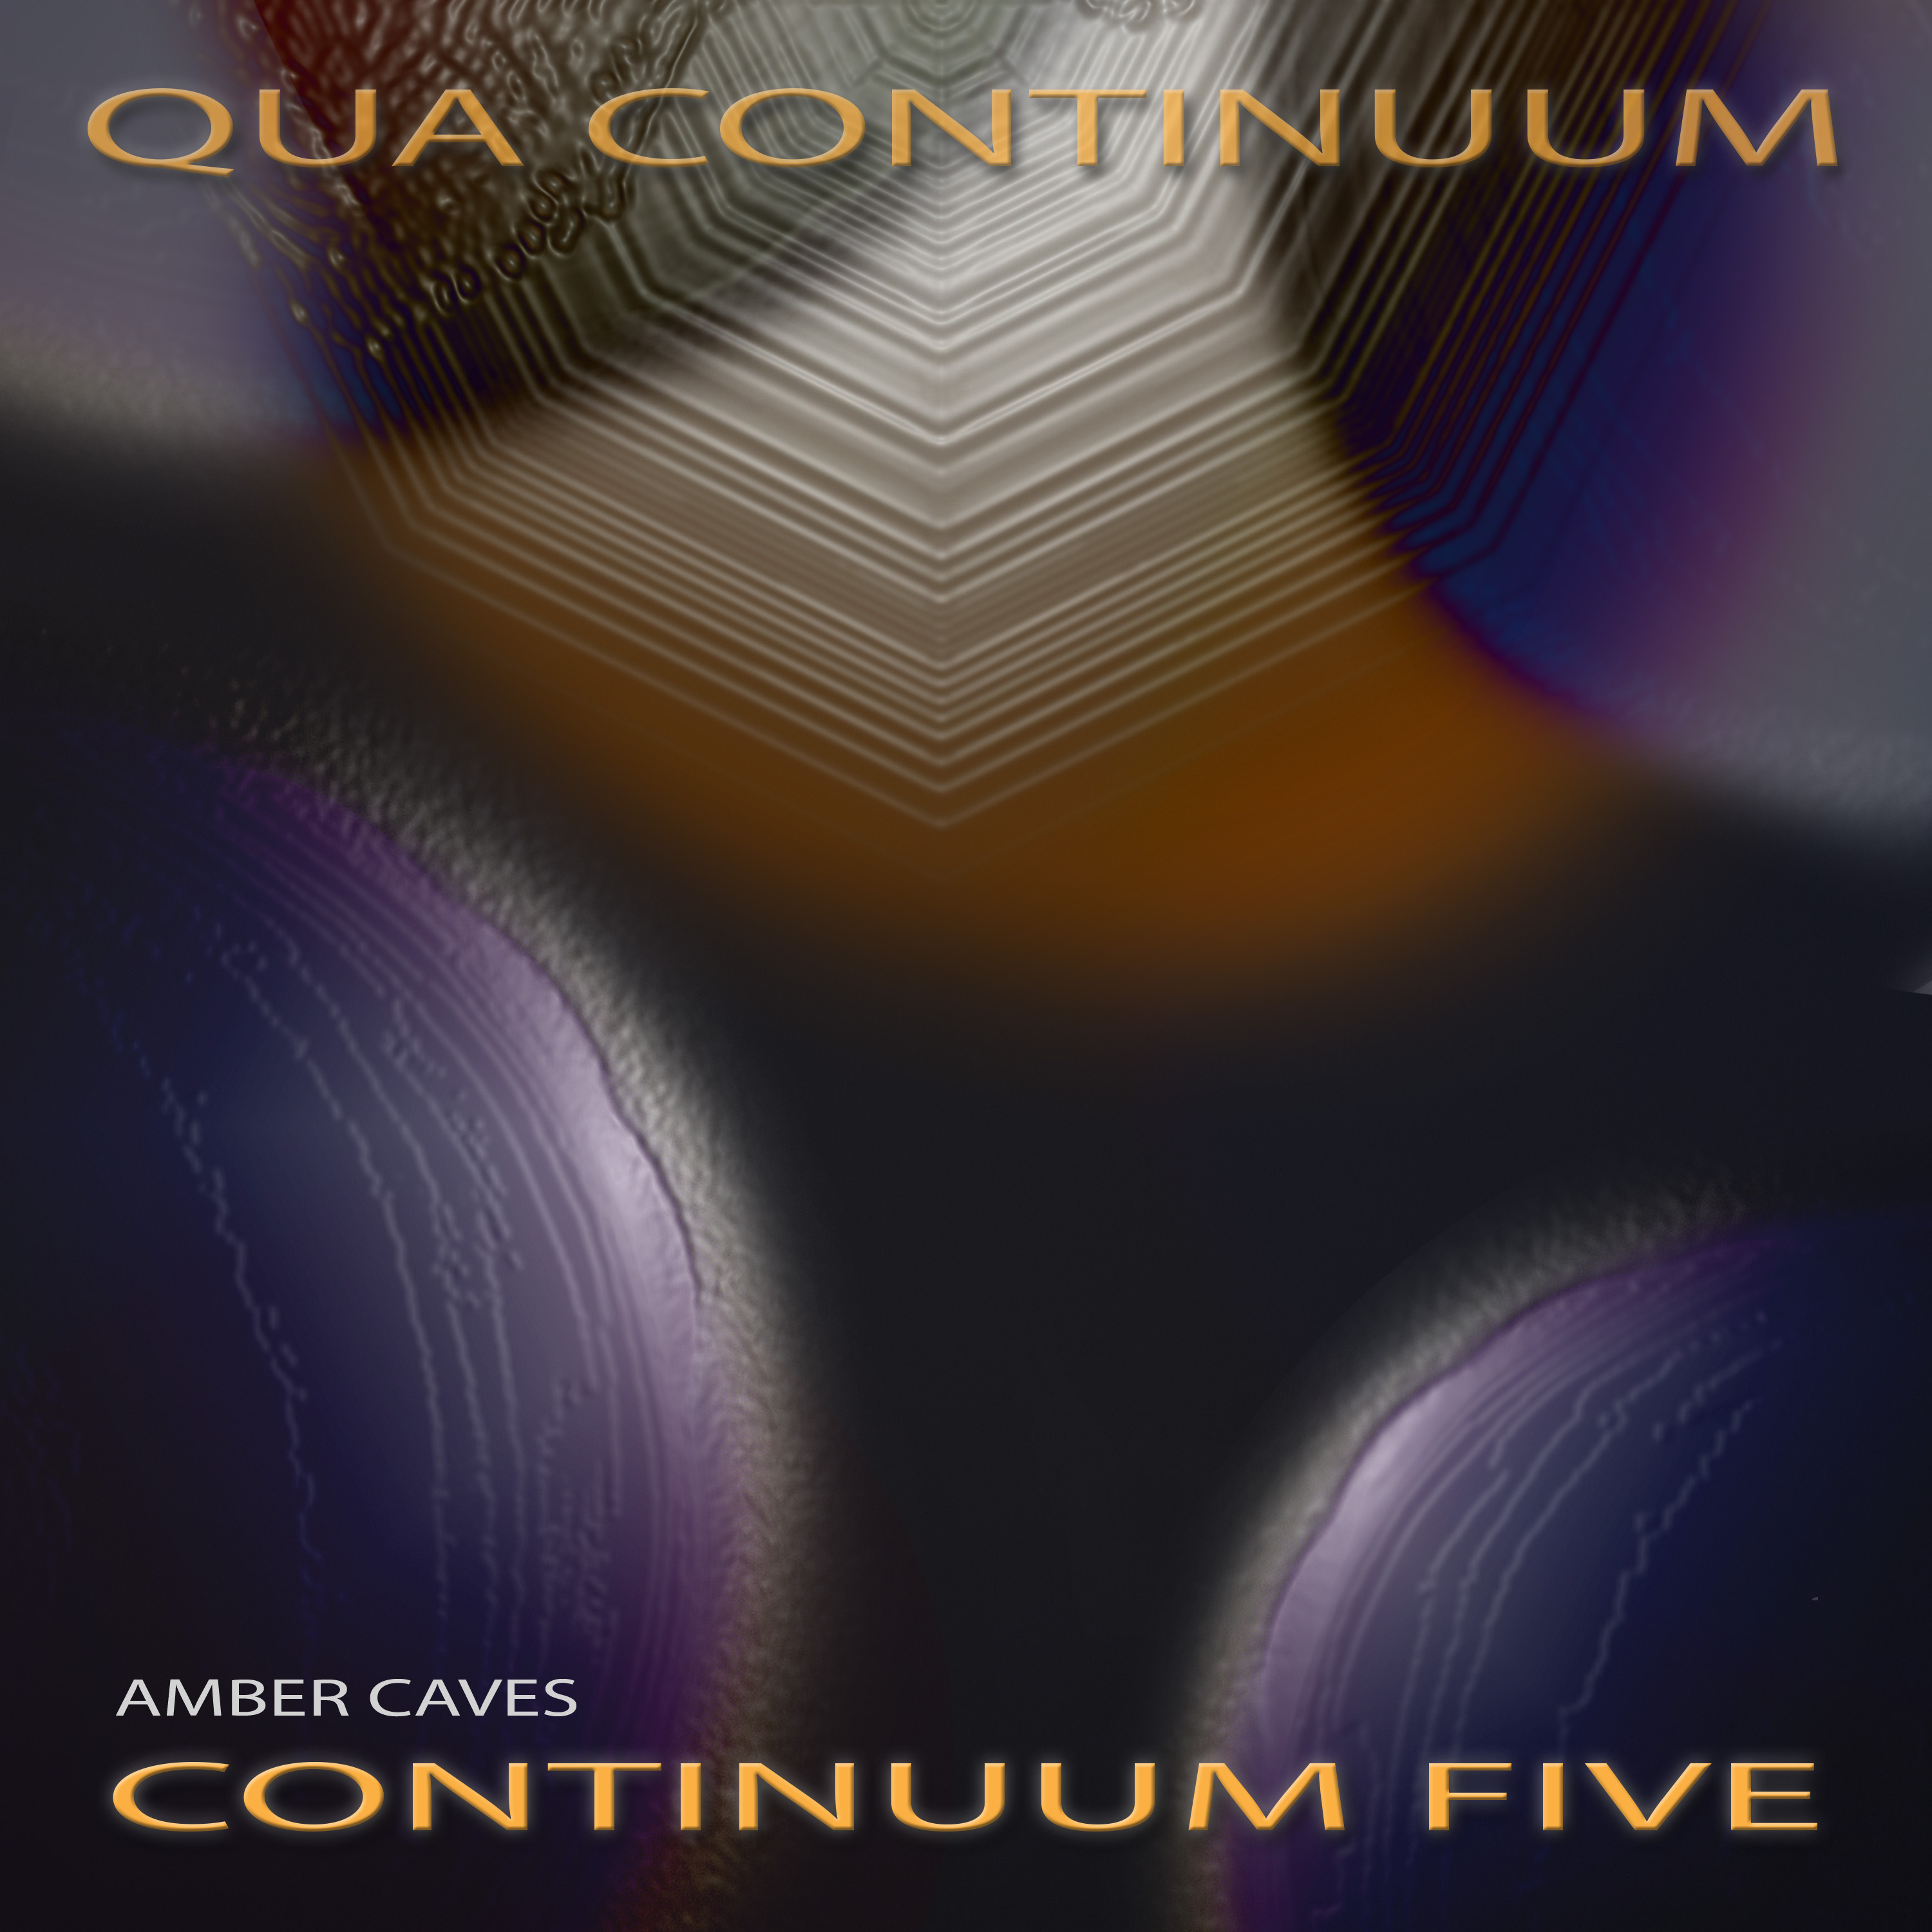 Qua Continuum - Continuum Five - Cover Image